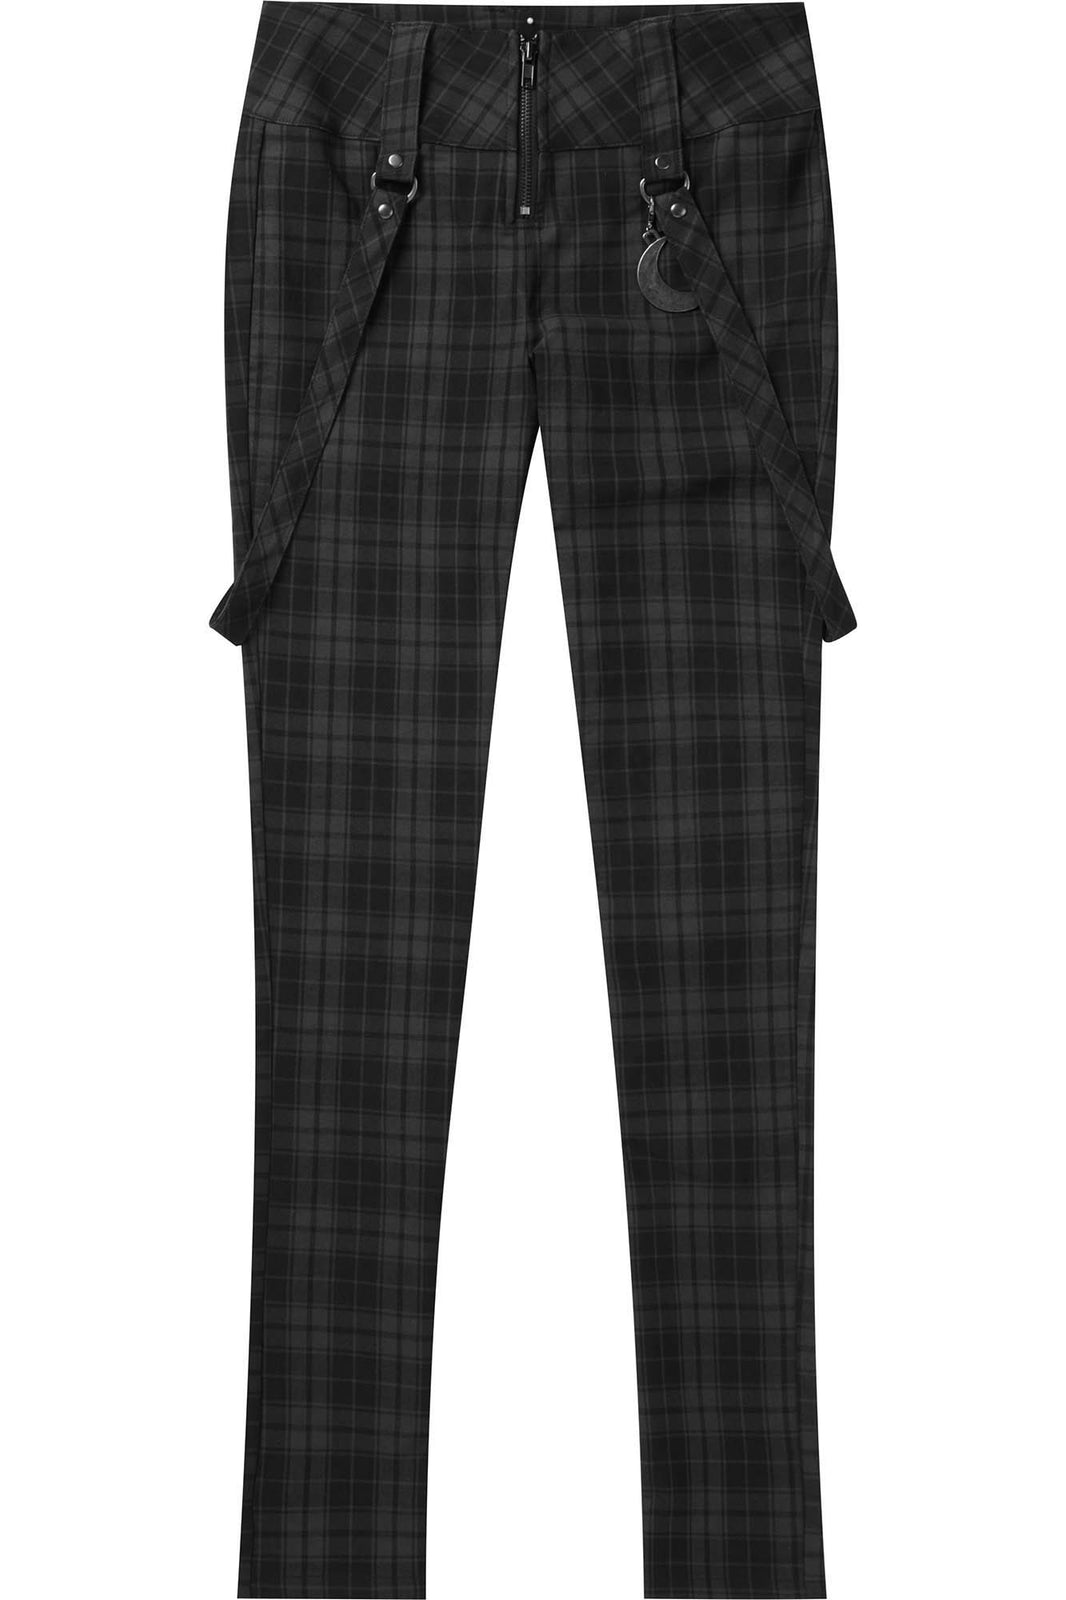 Darklands Trousers [TARTAN]